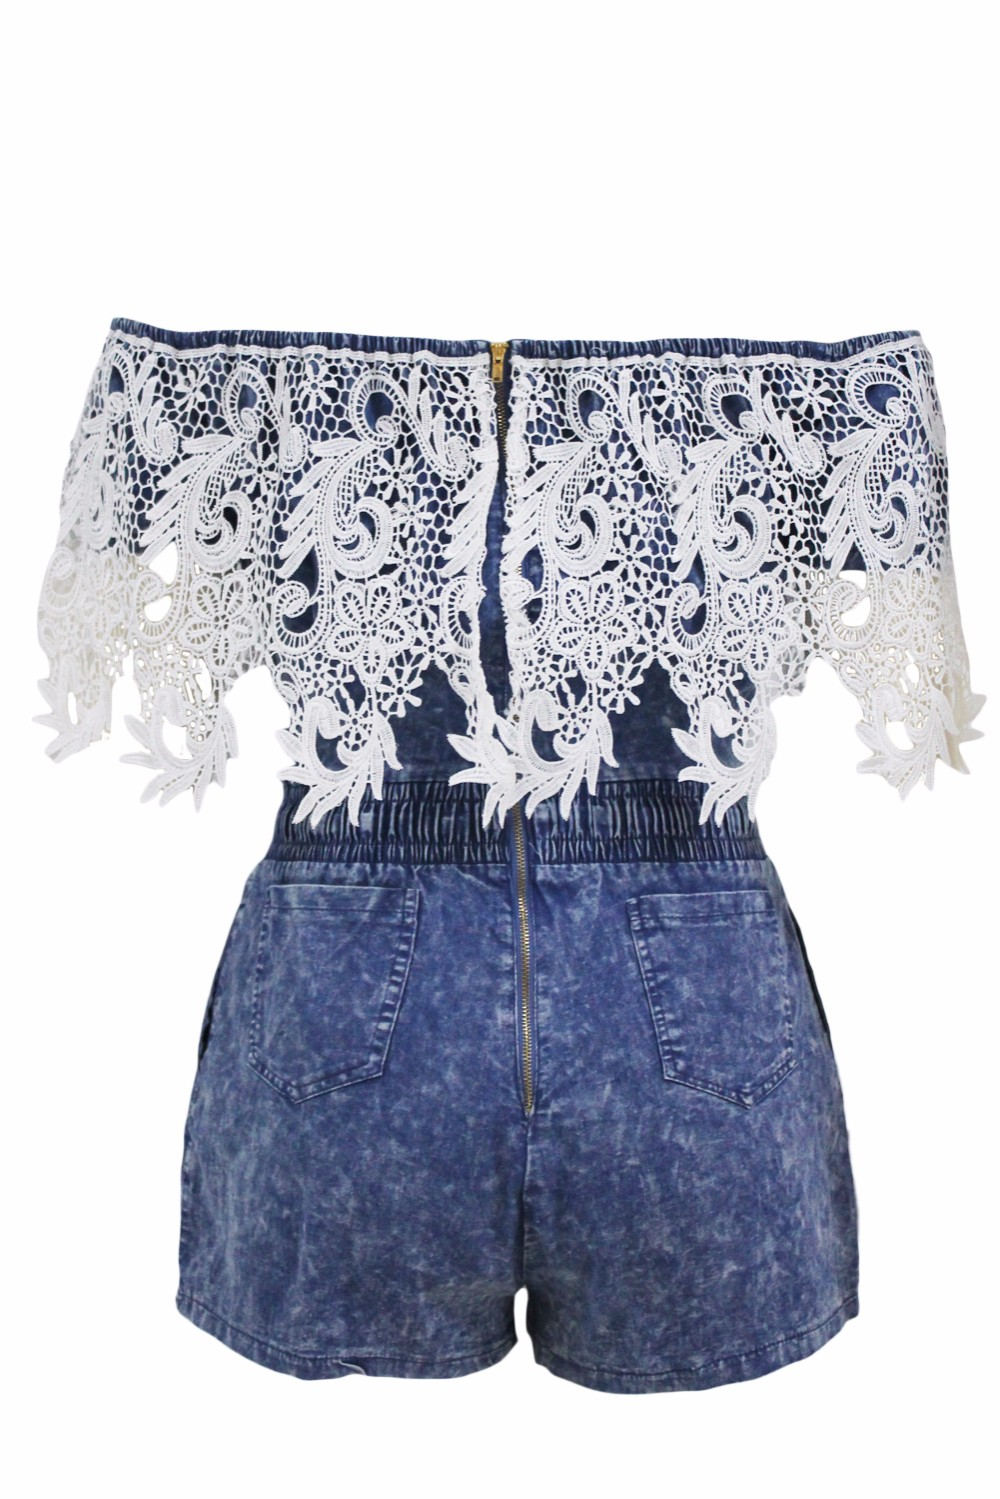 Crochet-Lace-Trim-Off-Shoulder-Denim-Romper-LC64137-5-4